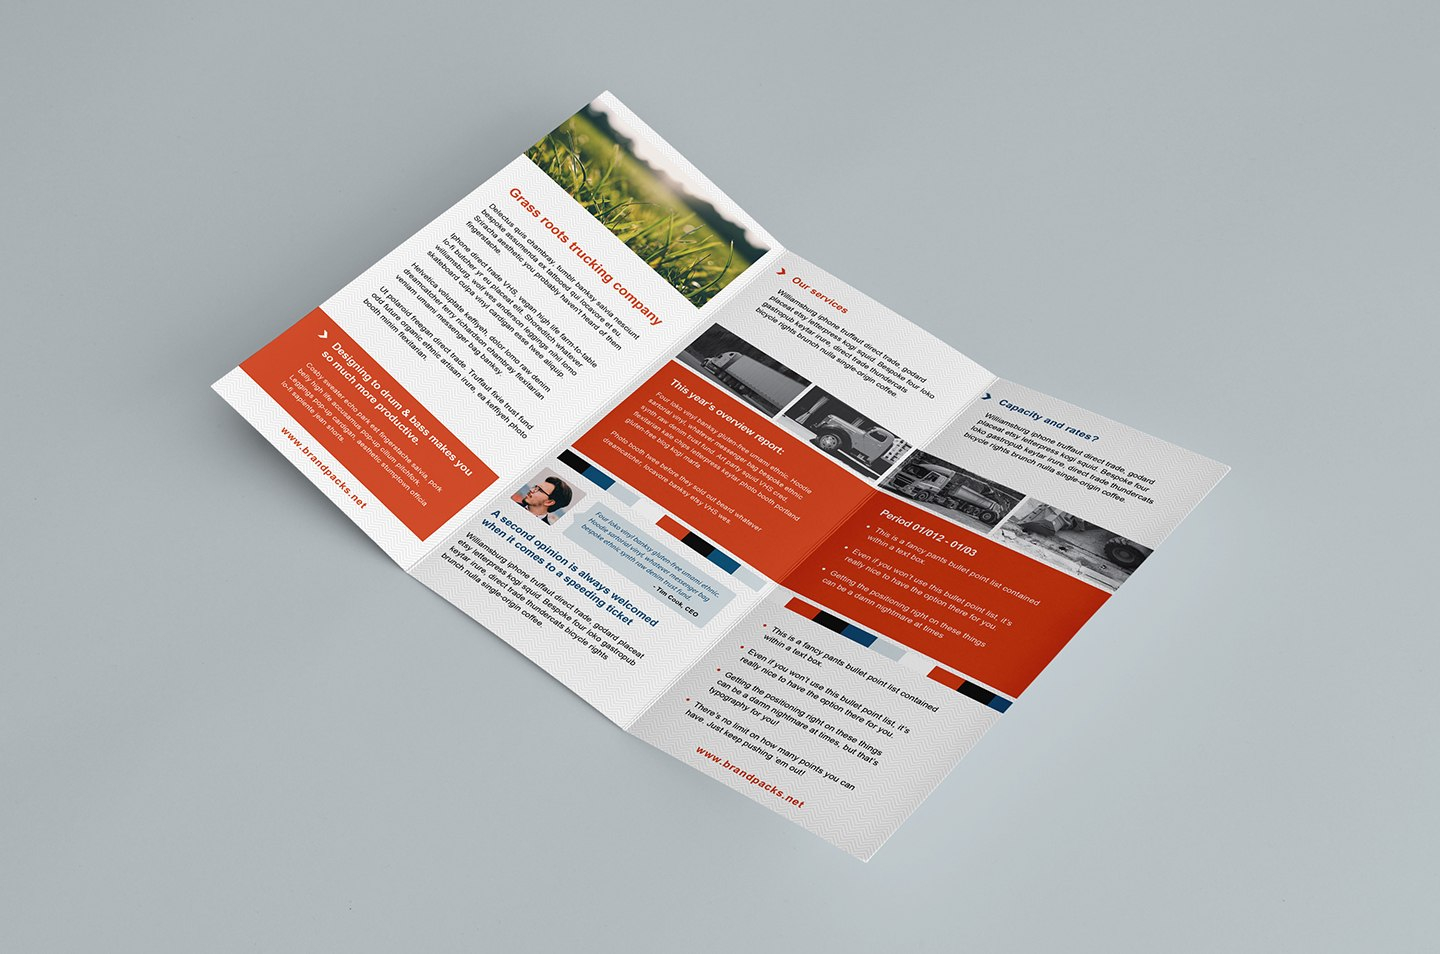 Tri Fold Brochure Template Psd Free Trifold Amazing Ideas Inside Pop Up Brochure Template